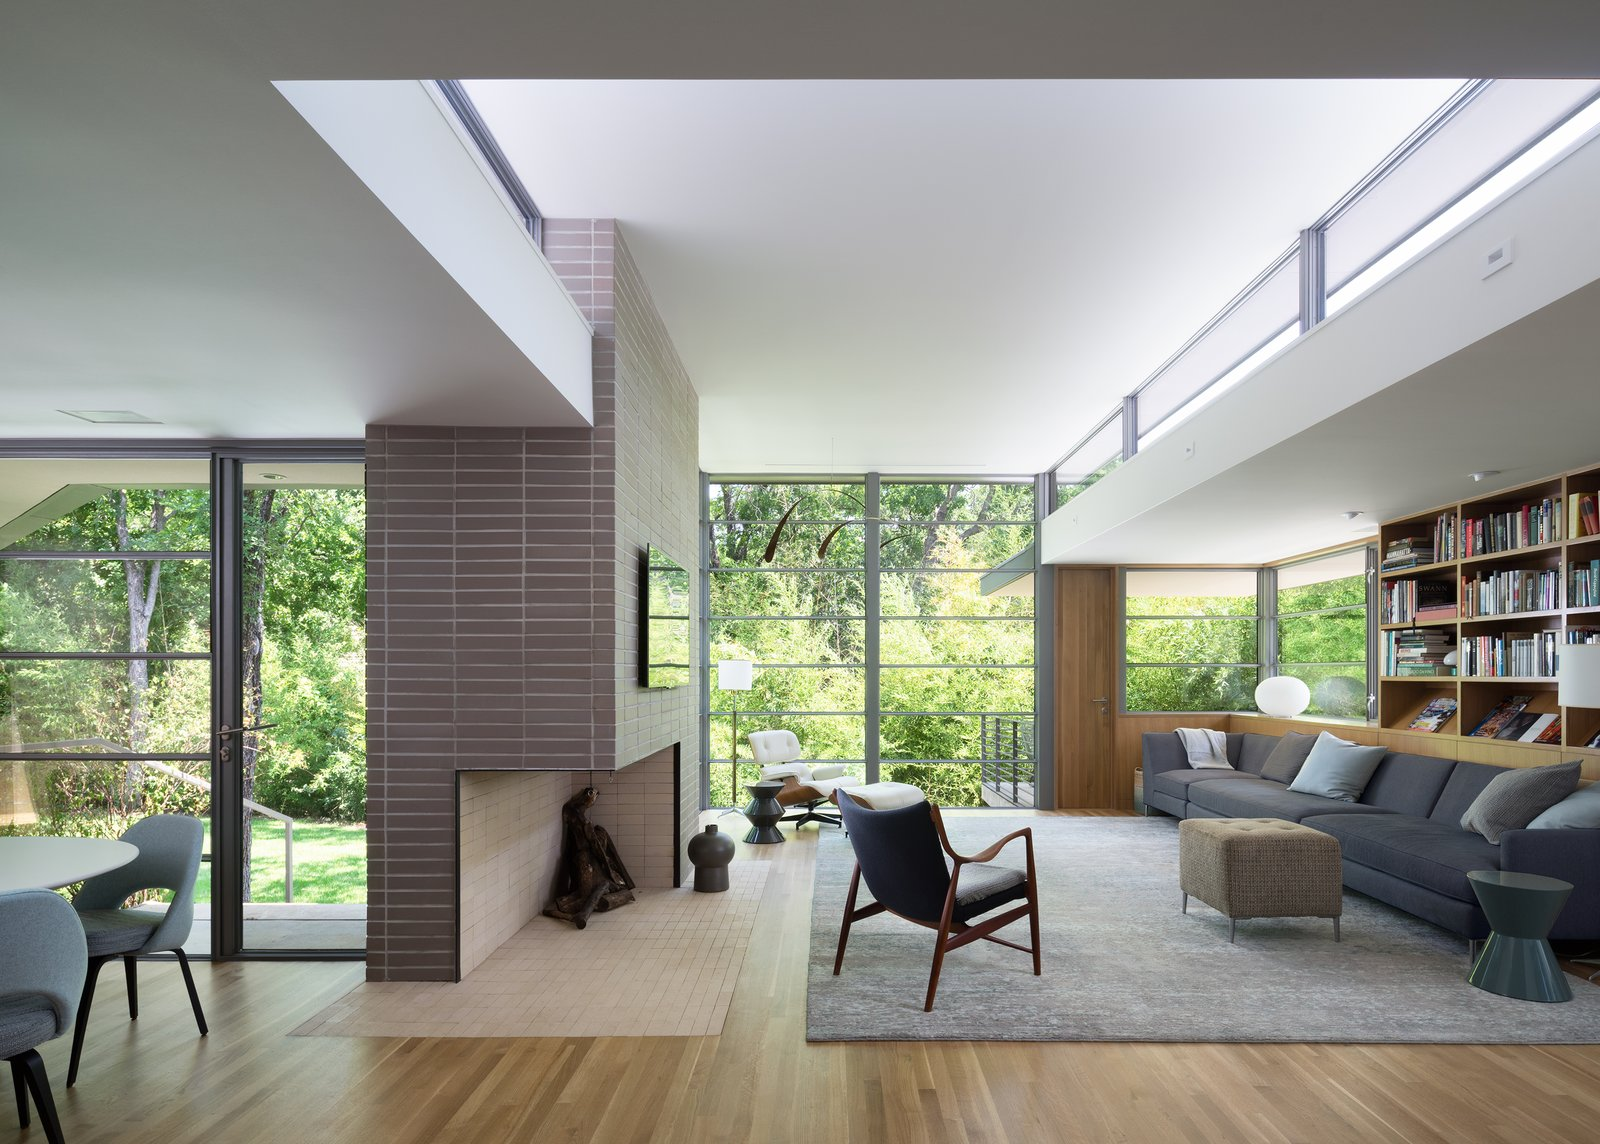 Living Room, Ottomans, Light Hardwood Floor, Bookcase, Chair, Corner Fireplace, End Tables, Recessed Lighting, and Sectional  Inwood Place by Tim Cuppett Architects